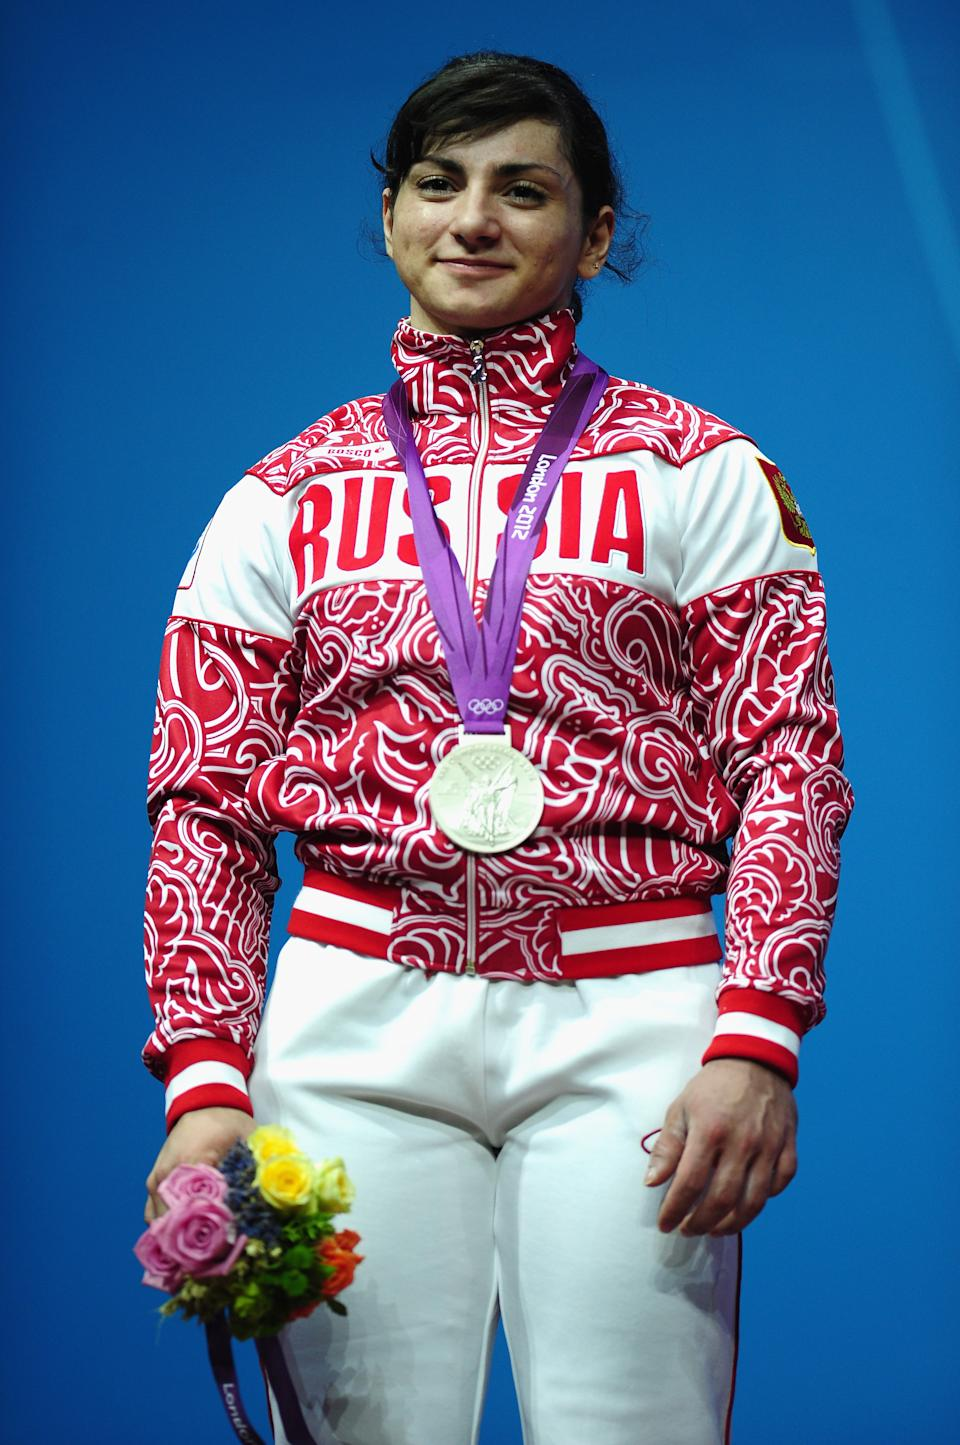 LONDON, ENGLAND - JULY 31: Svetlana Tsarukaeva of Russia stands on the podium with her silver medal after the Women's 63kg Weightlifting final on Day 4 of the London 2012 Olympic Games at ExCeL on July 31, 2012 in London, England. (Photo by Laurence Griffiths/Getty Images)